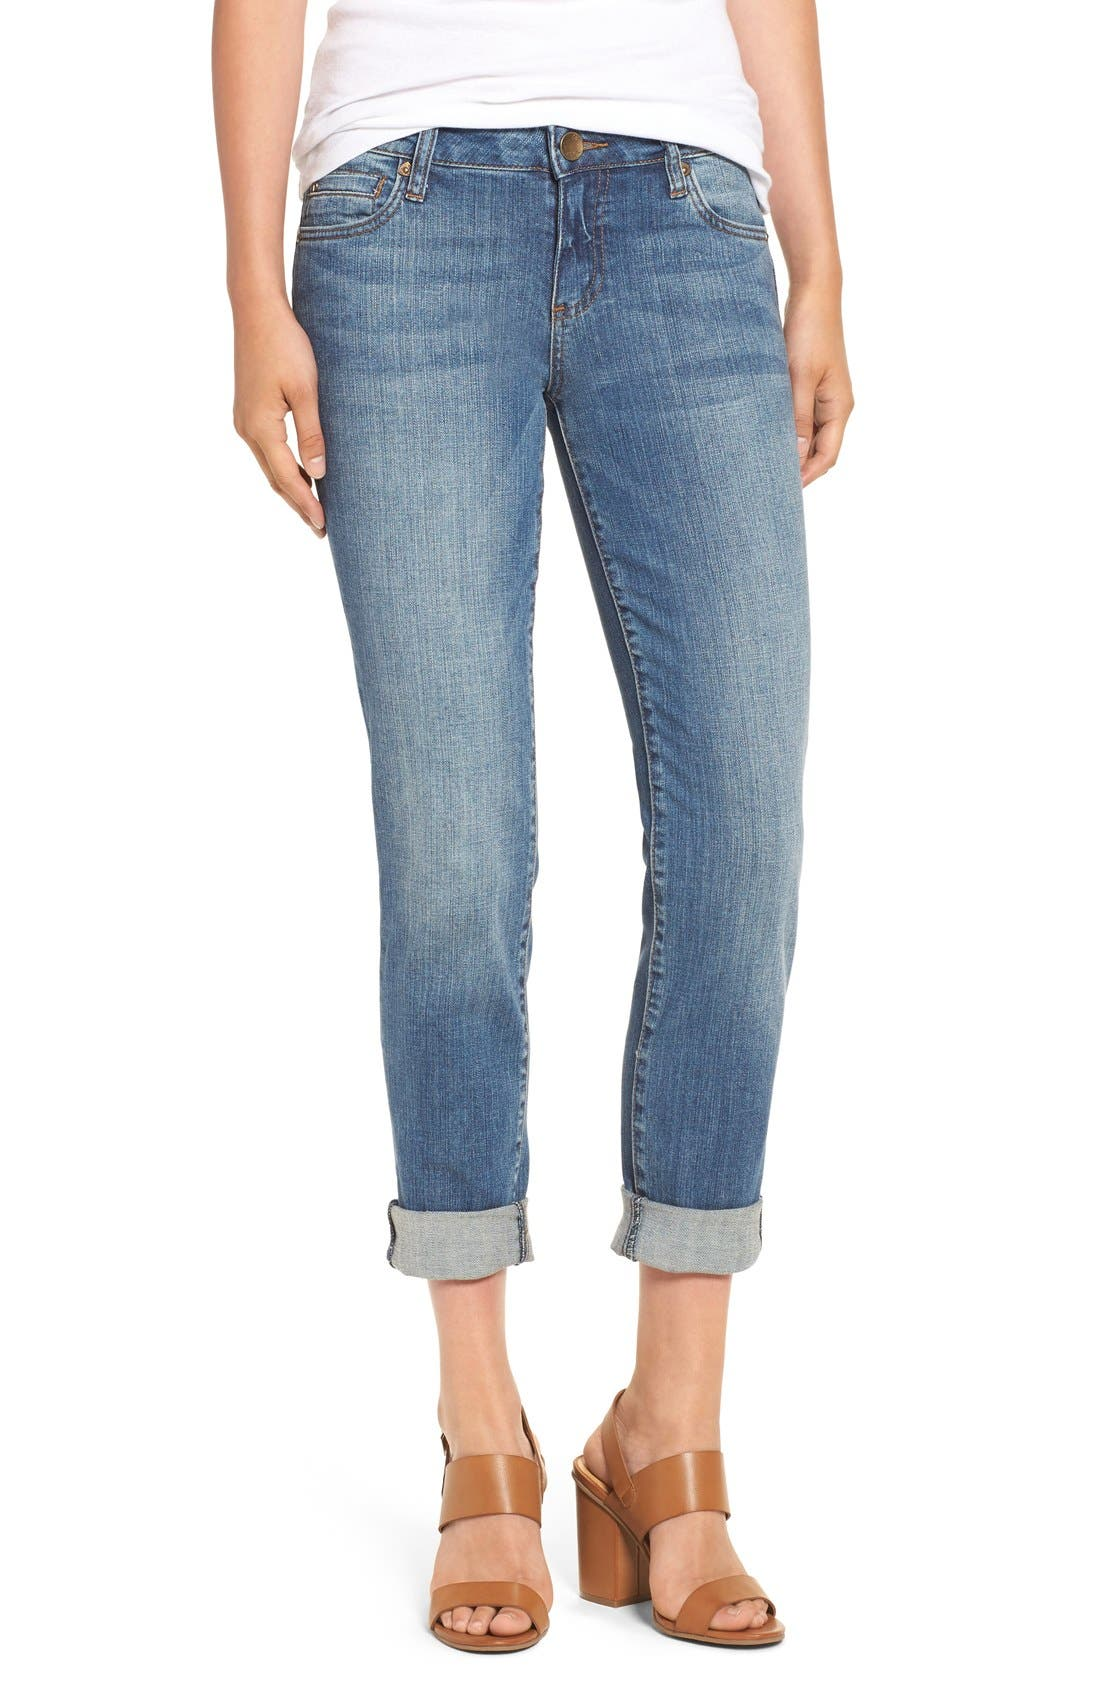 'Catherine' Slim Boyfriend Jeans,                             Main thumbnail 1, color,                             401